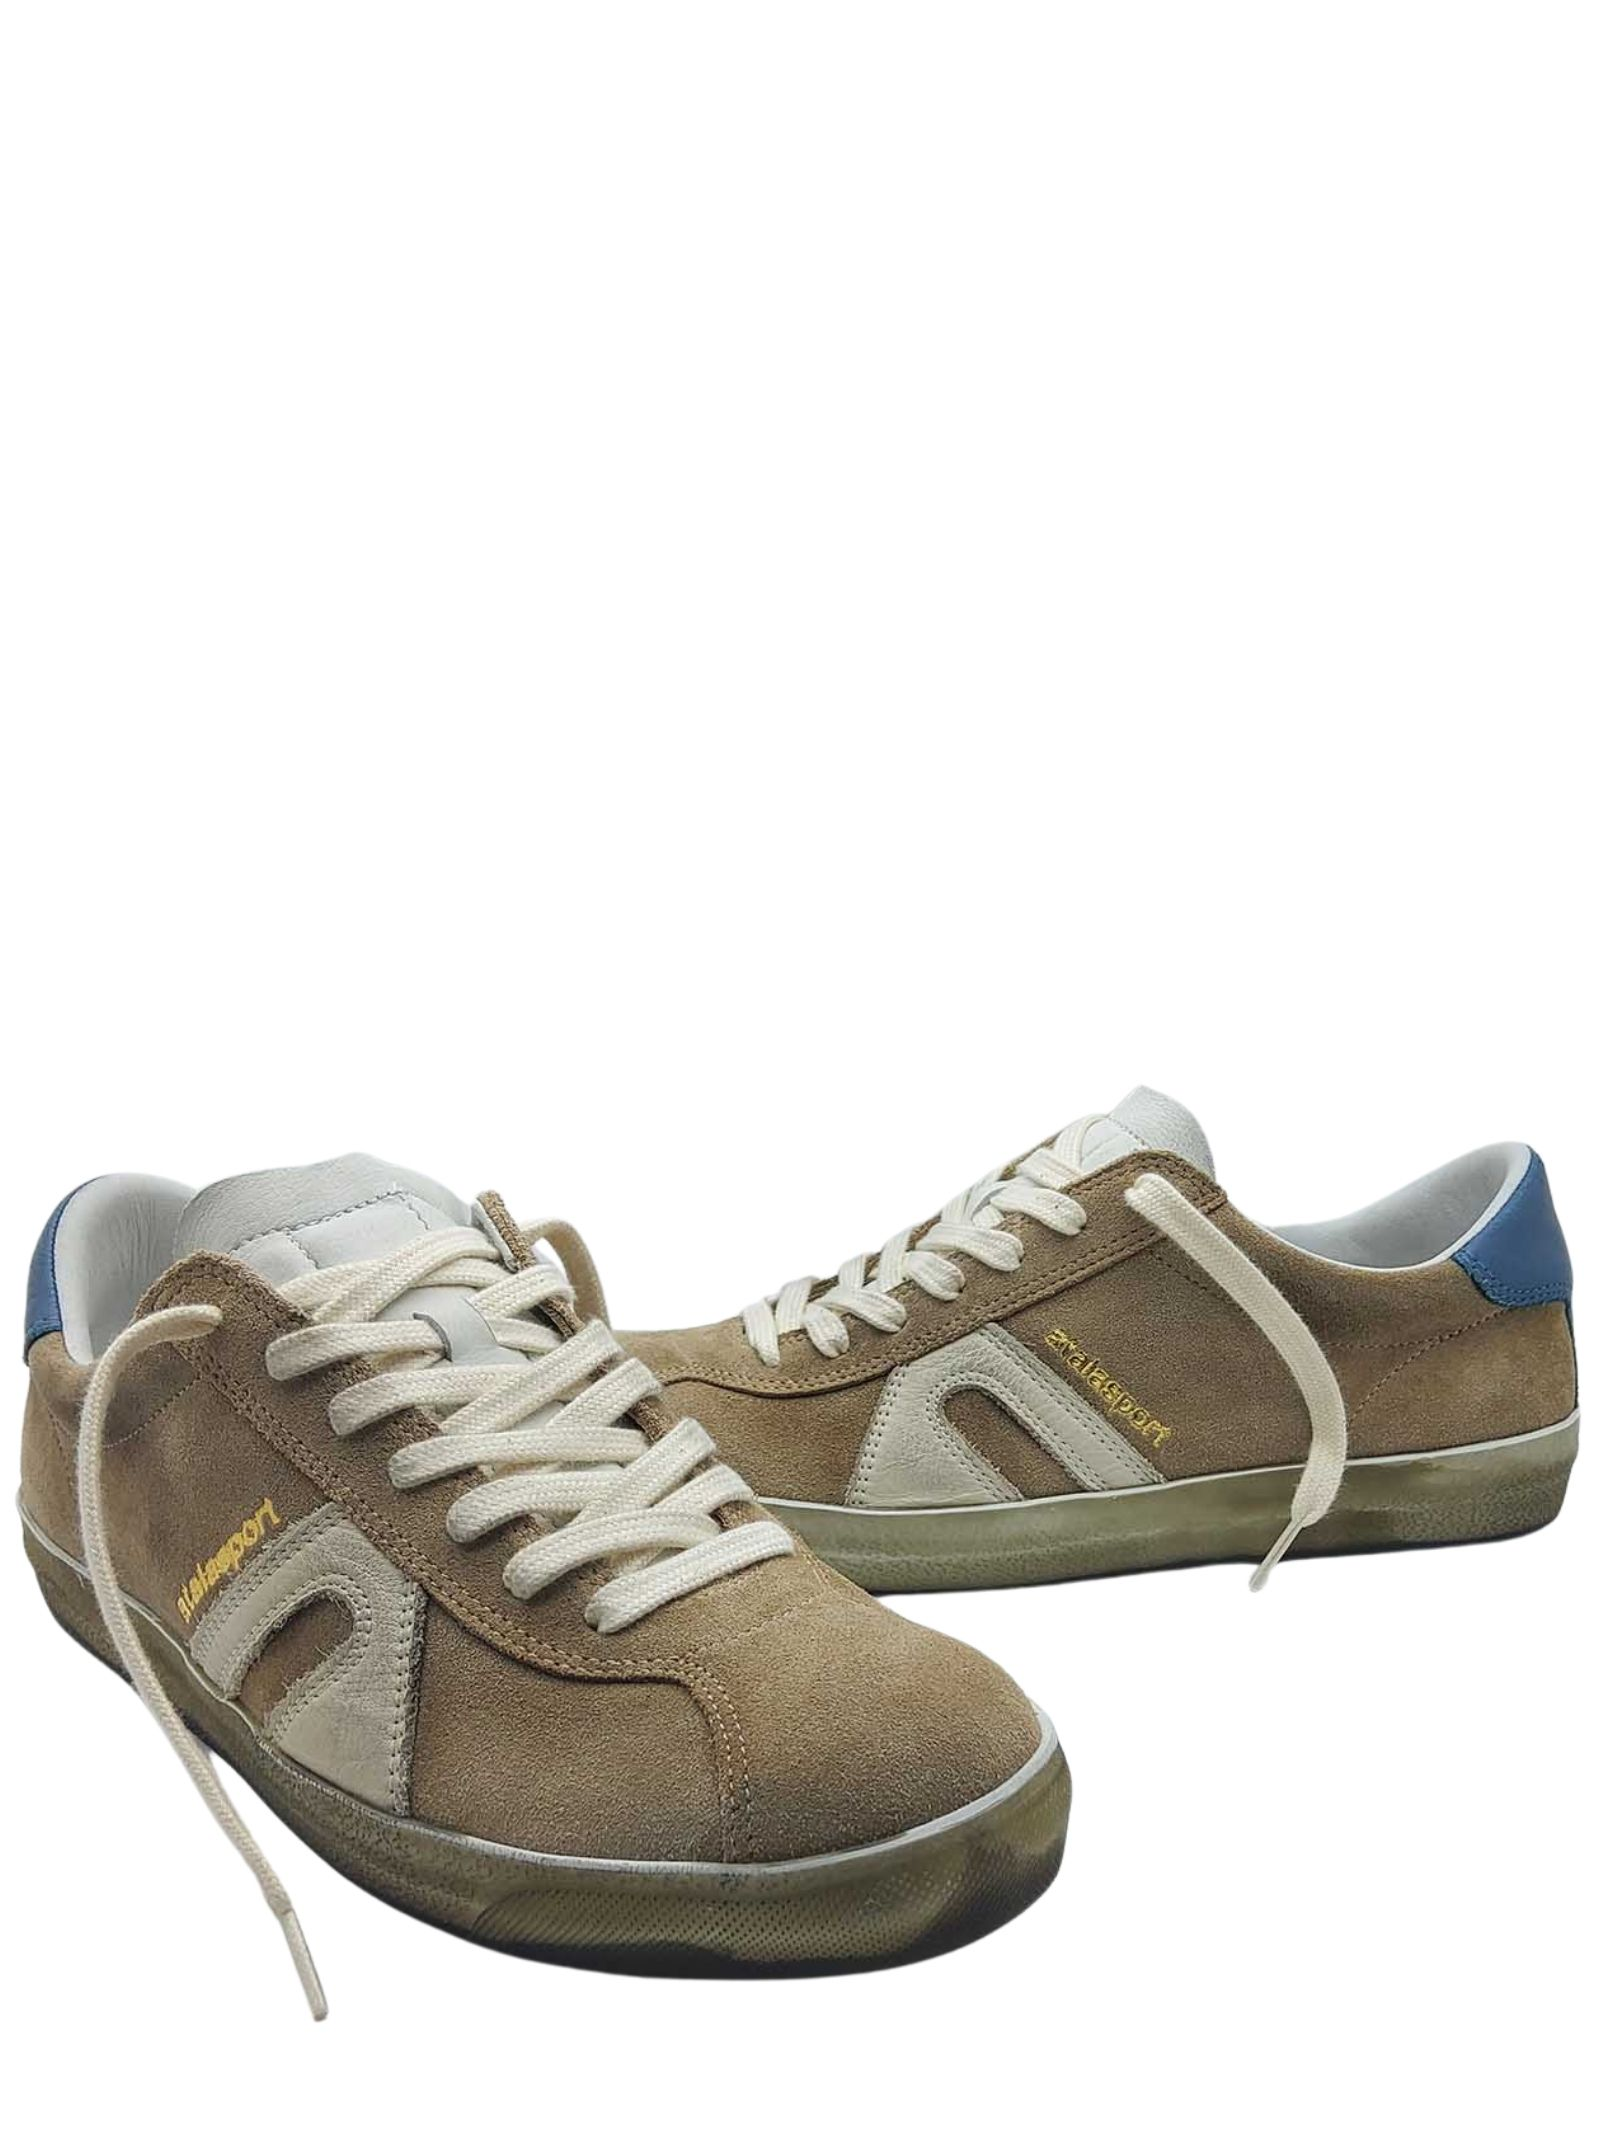 Men's Shoes Sneakers Lace-up in Beige Suede with Vintage Honey Bottom Atala | Sneakers | 10022015